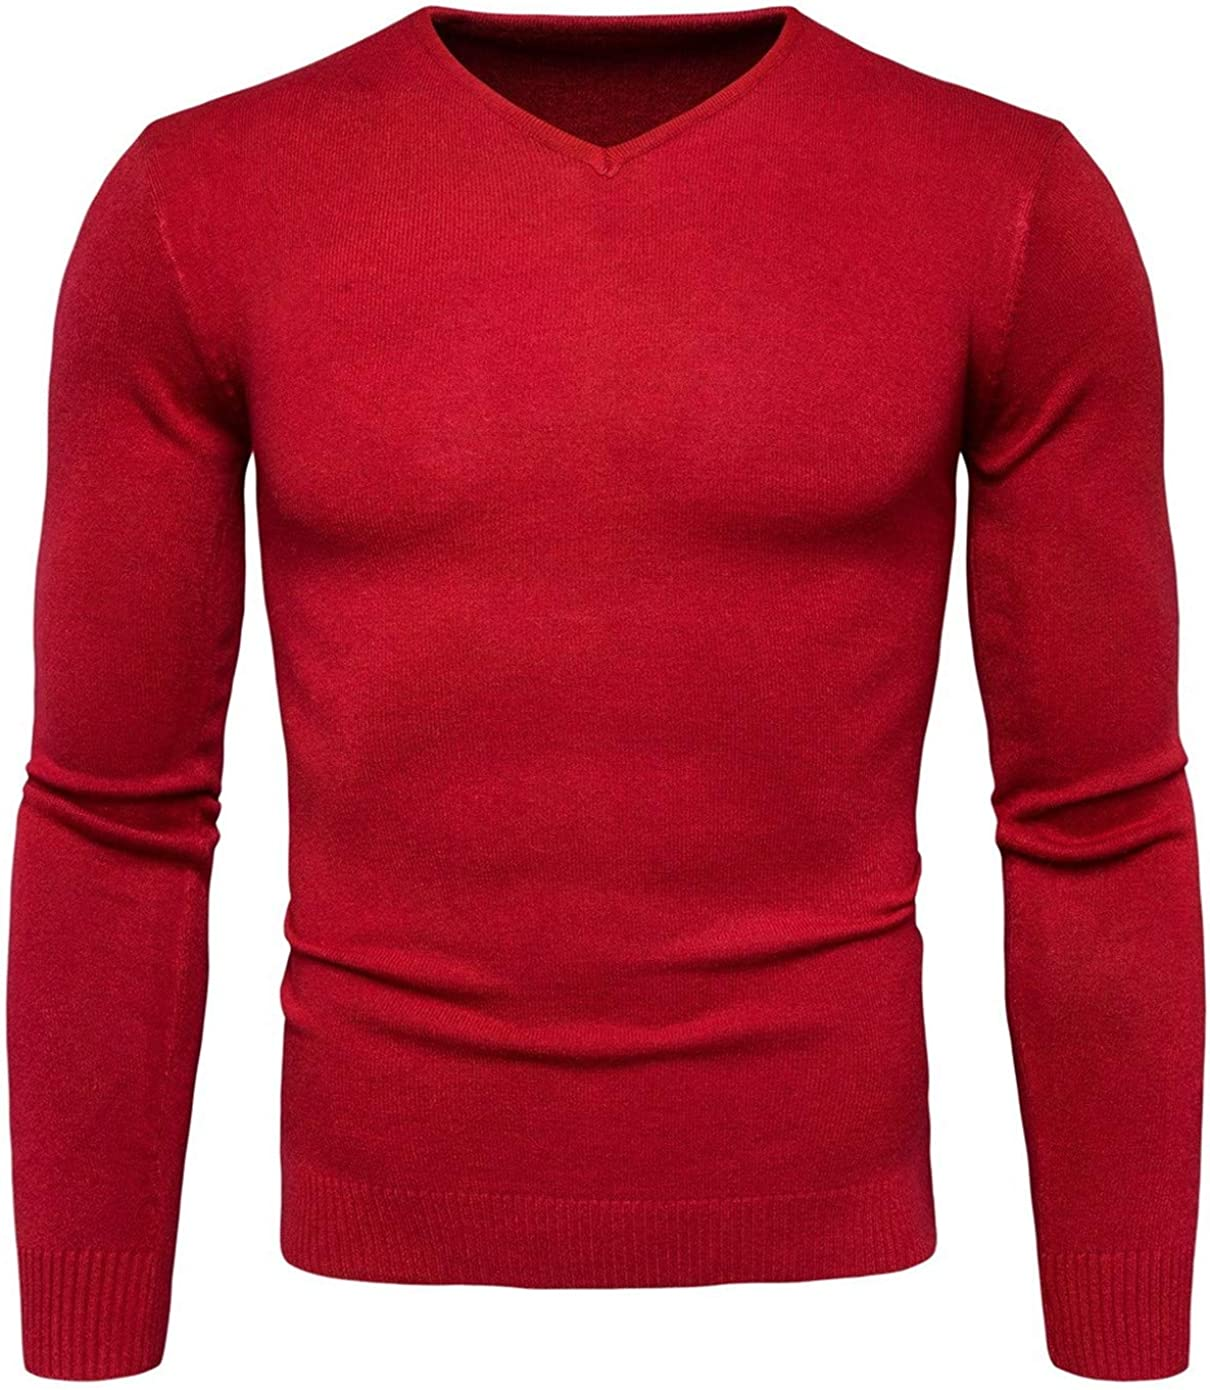 Soluo V-Neck Sweater for Men Lightweight Spring Pullover Sweater Merino Wool and Cotton Knit Underwear (red,Medium)